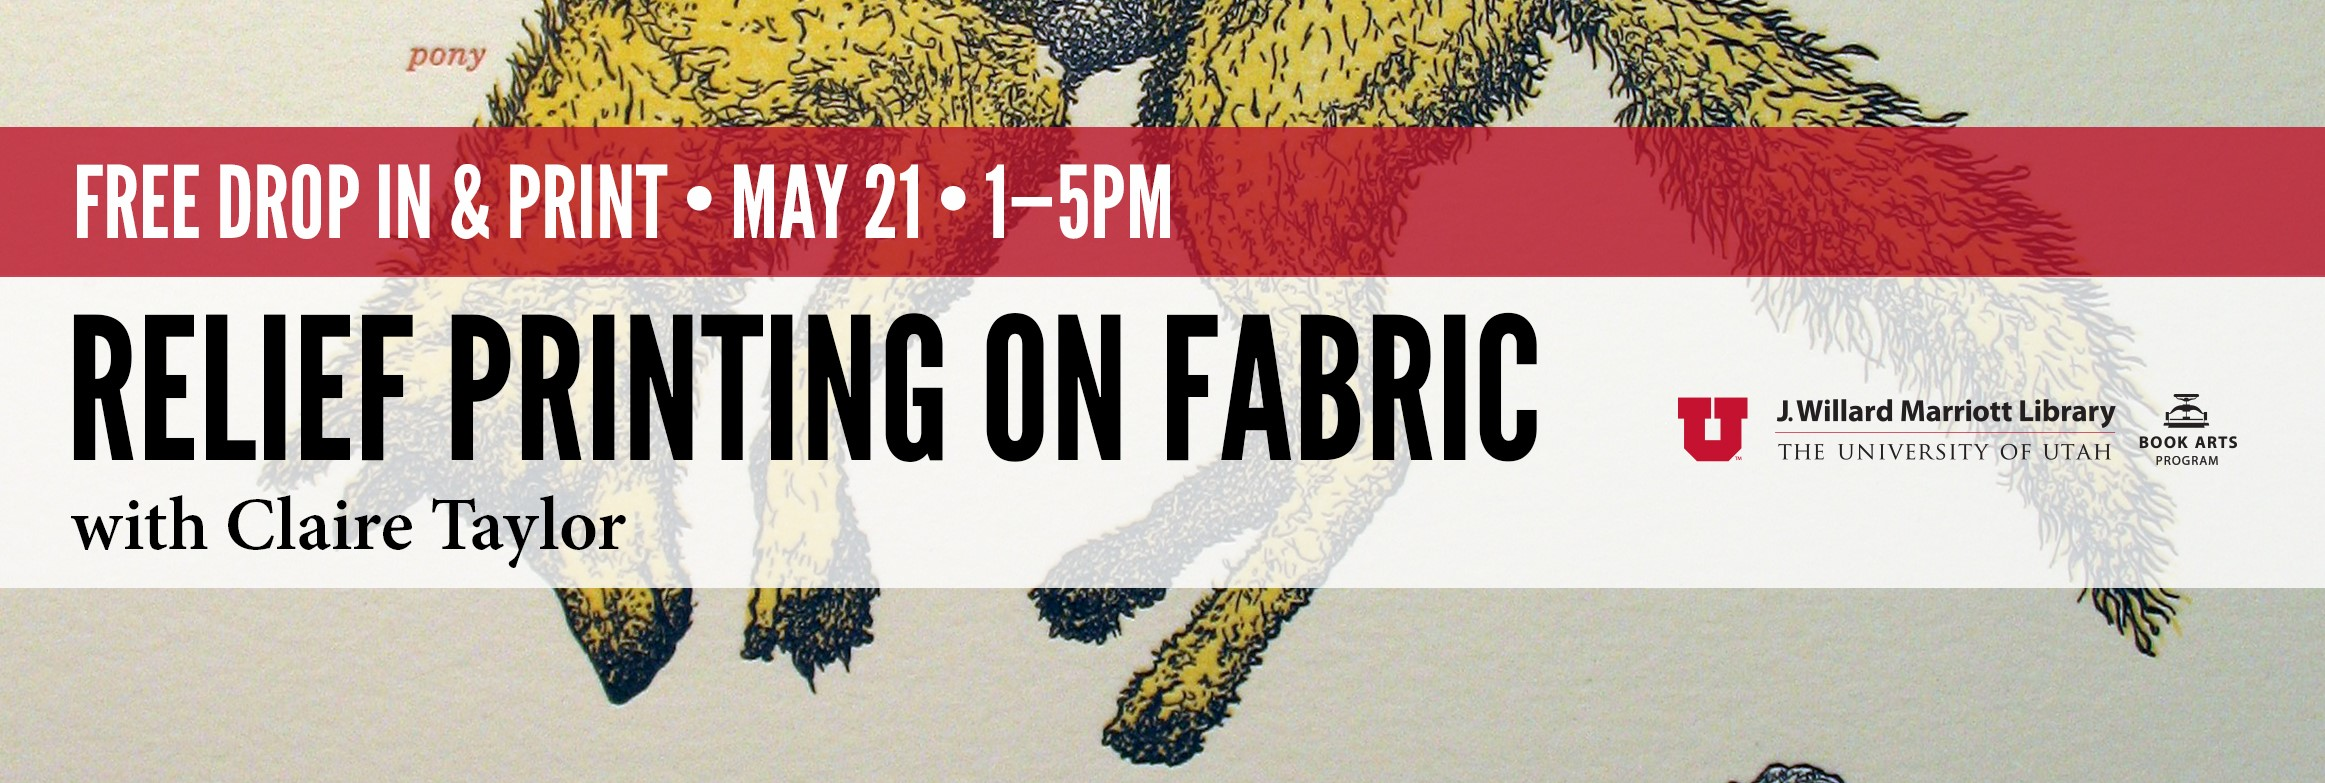 Free Relief Printing on Fabric May 21 1-5pm